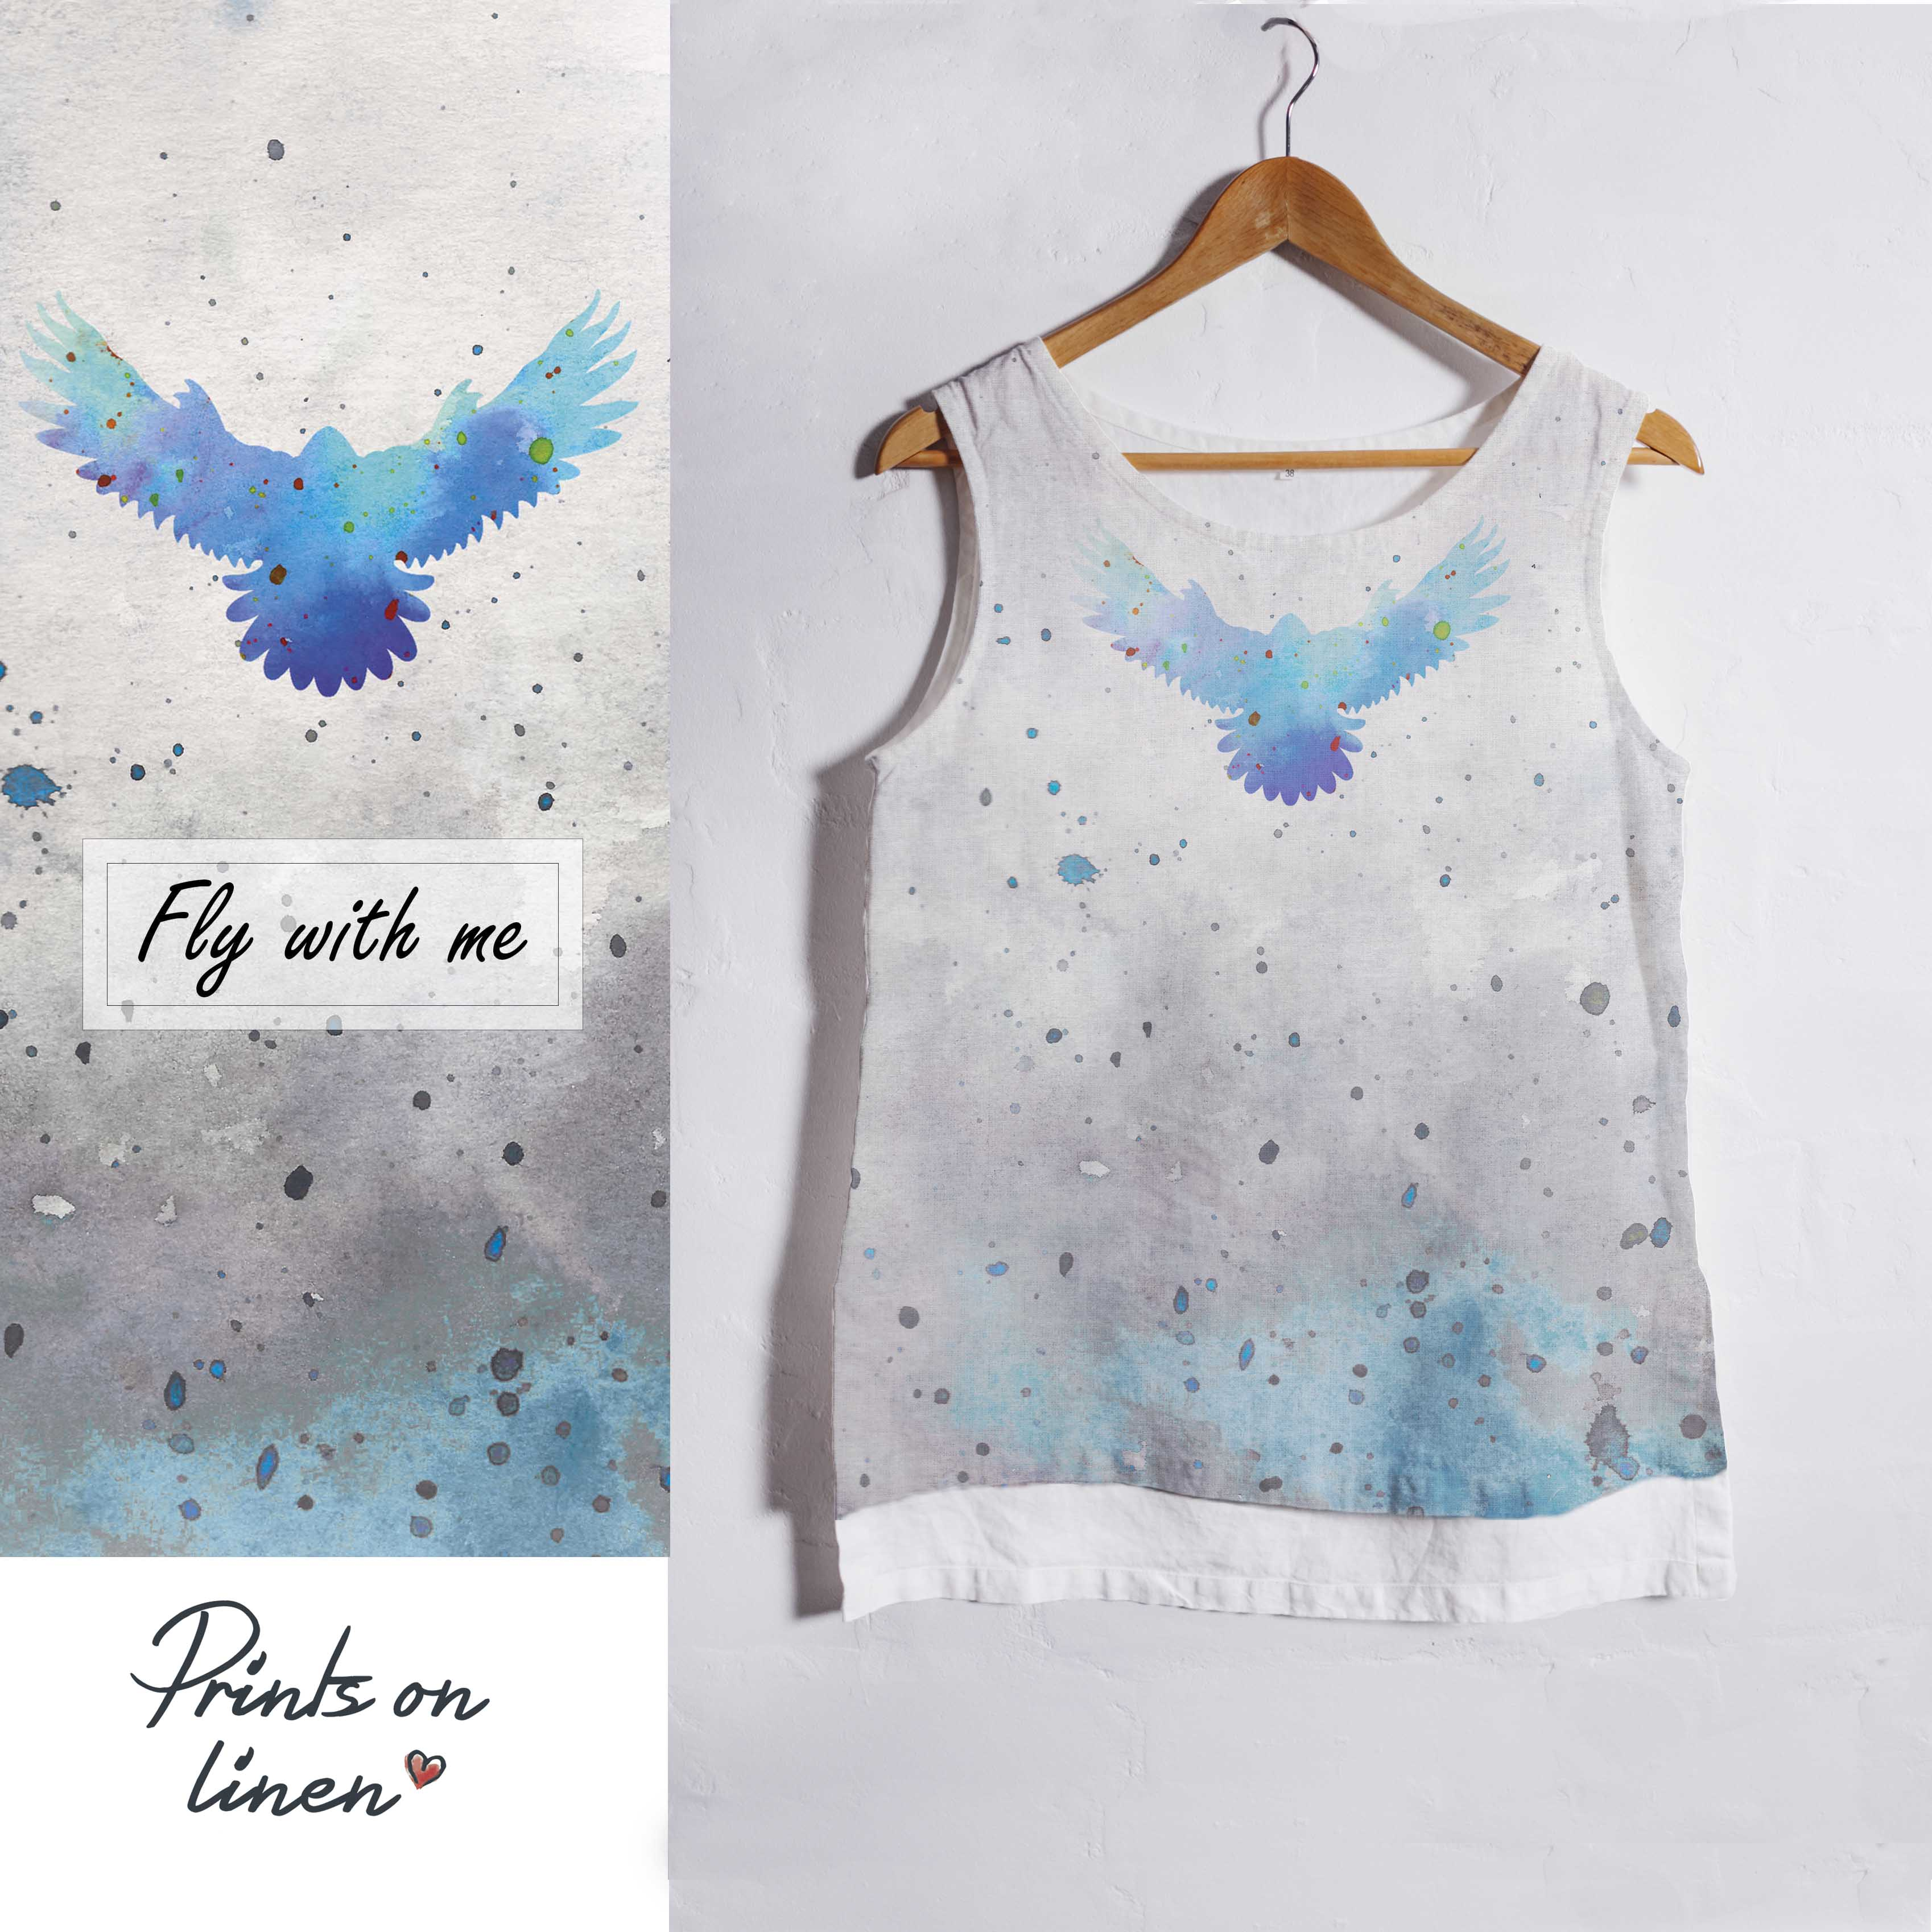 17447ec38 Prints on linen - Tank top - Linen tank top / Fly with me